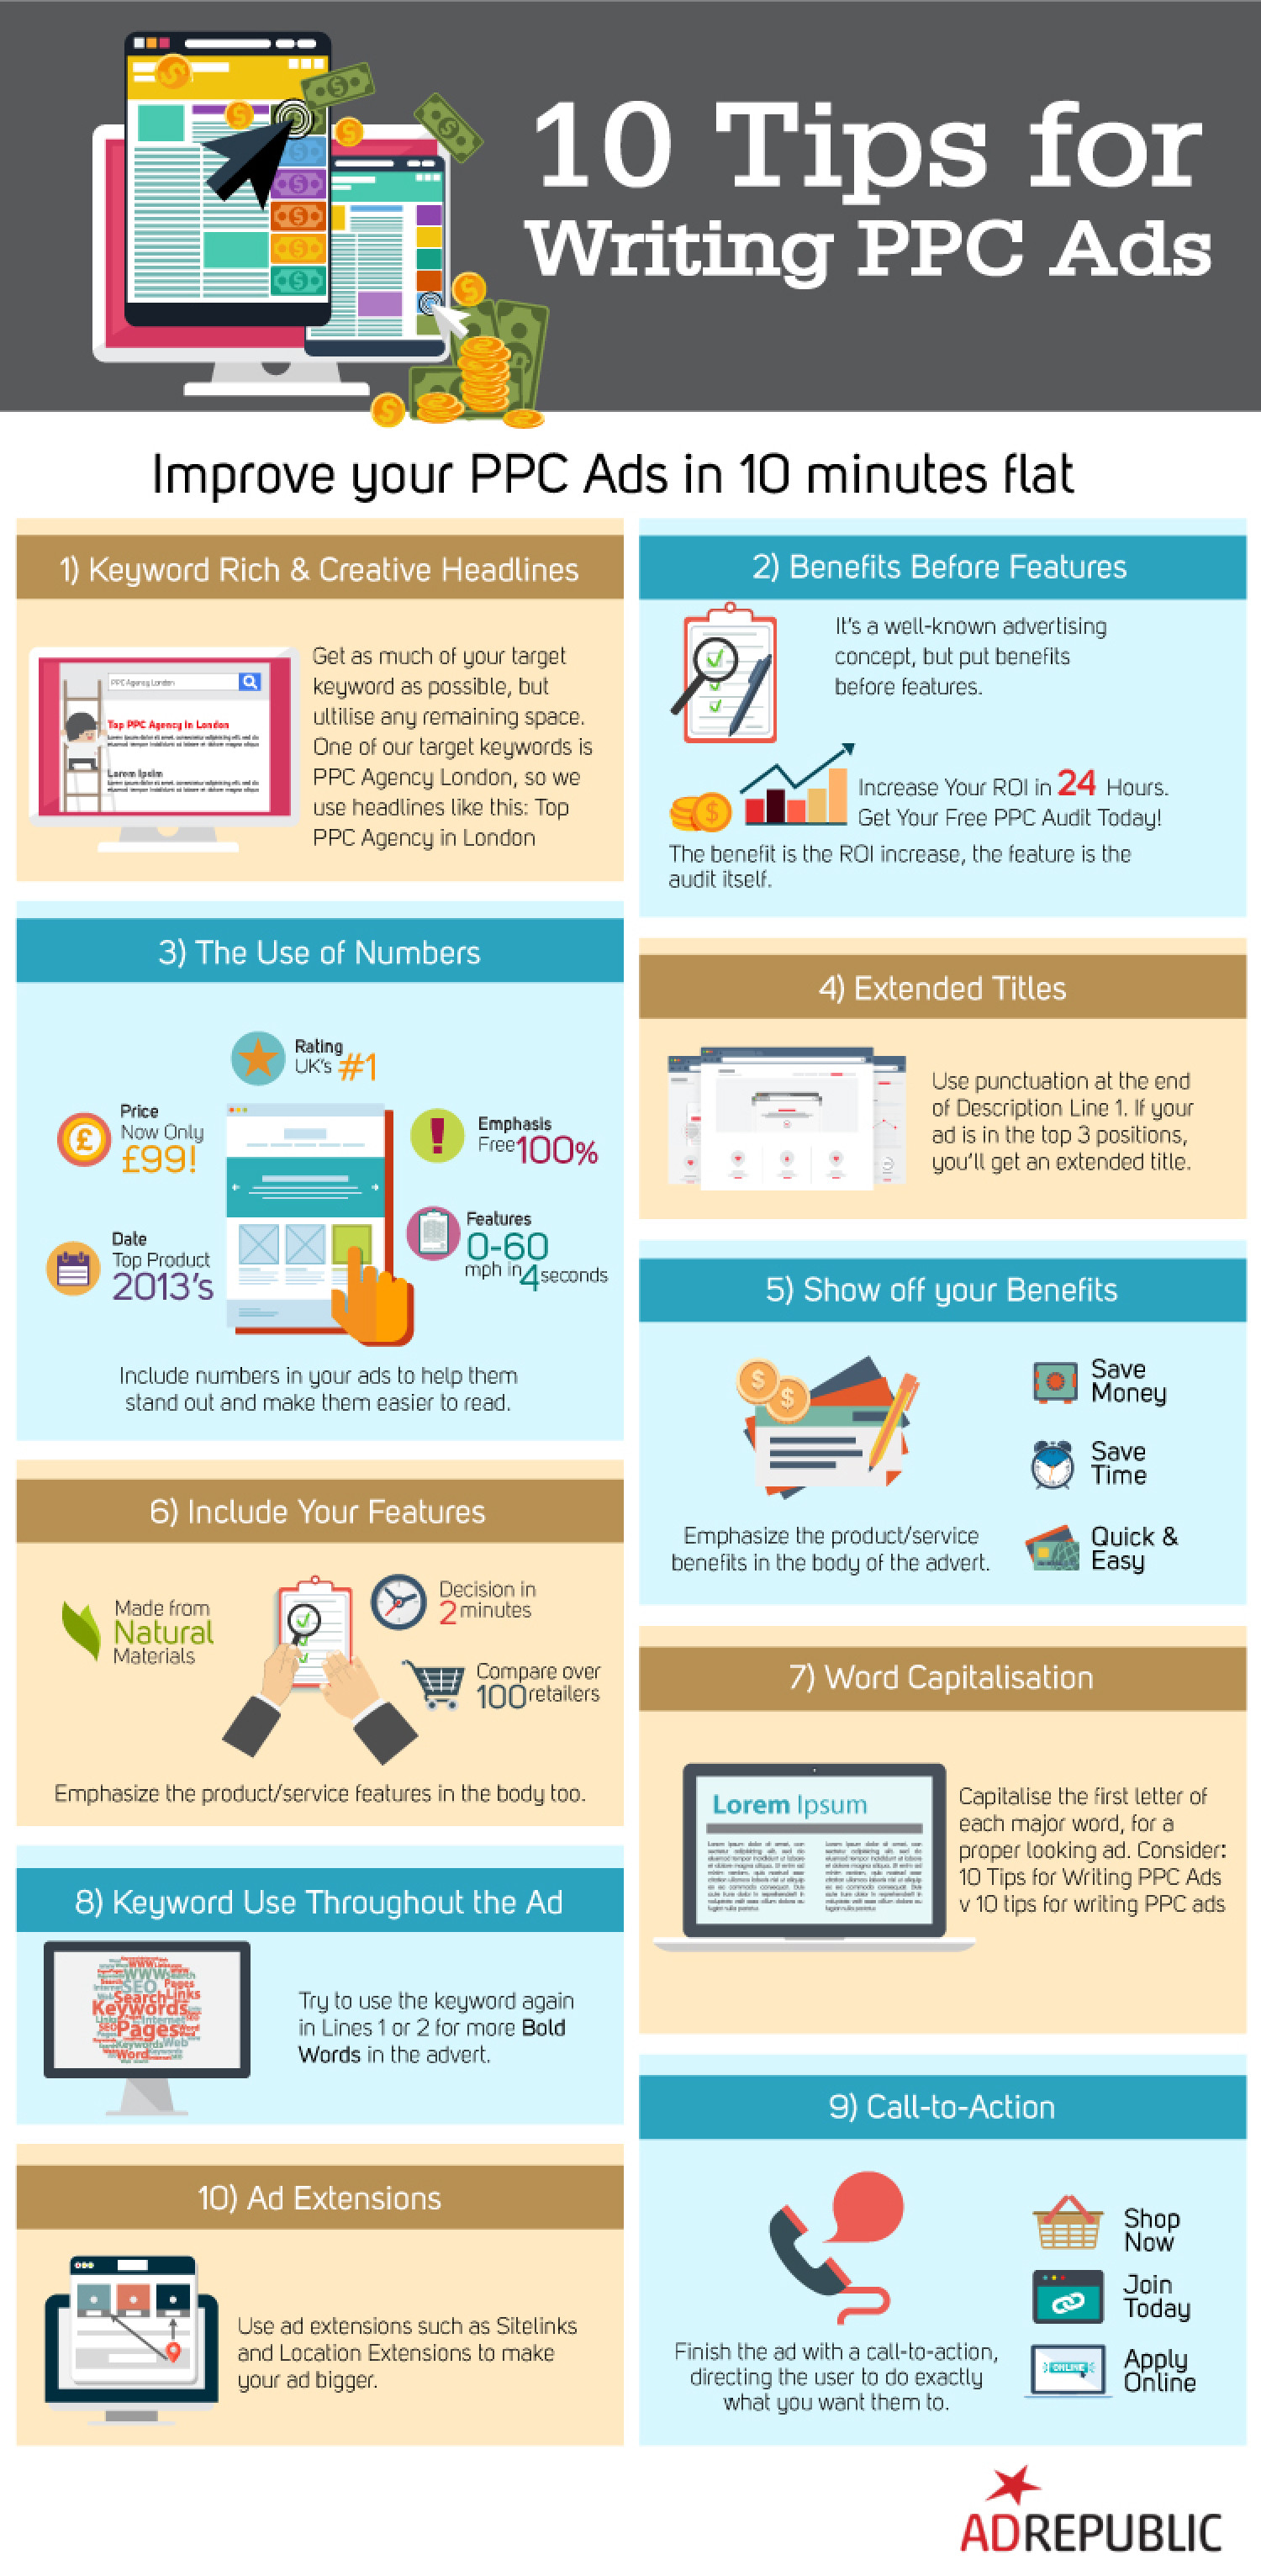 Improve Your Pay Per Click Ads in 10 minutes Flat Infographic